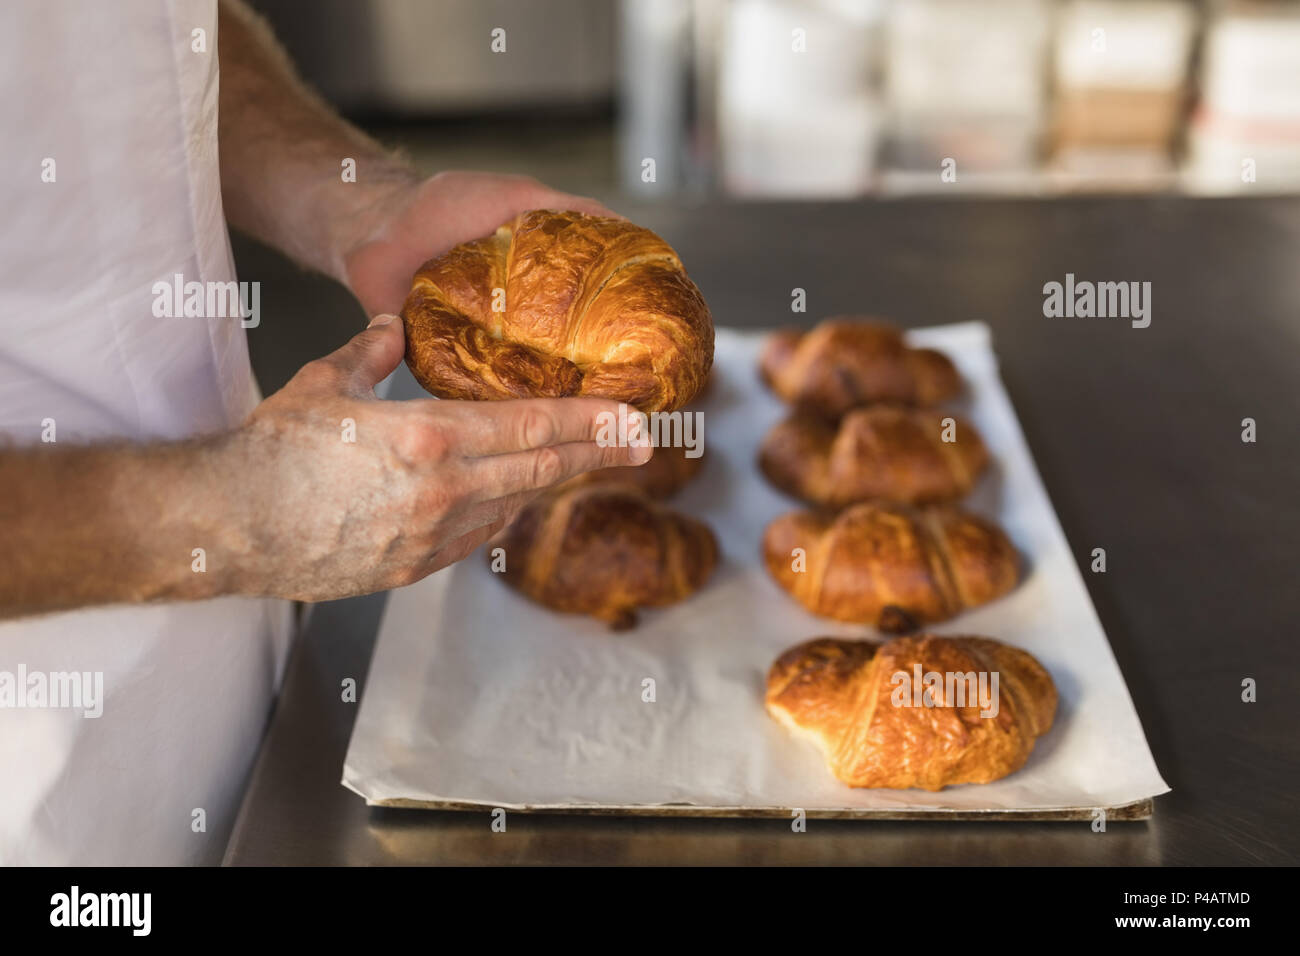 Male baker holding baked crescent rolls in bakery shop - Stock Image